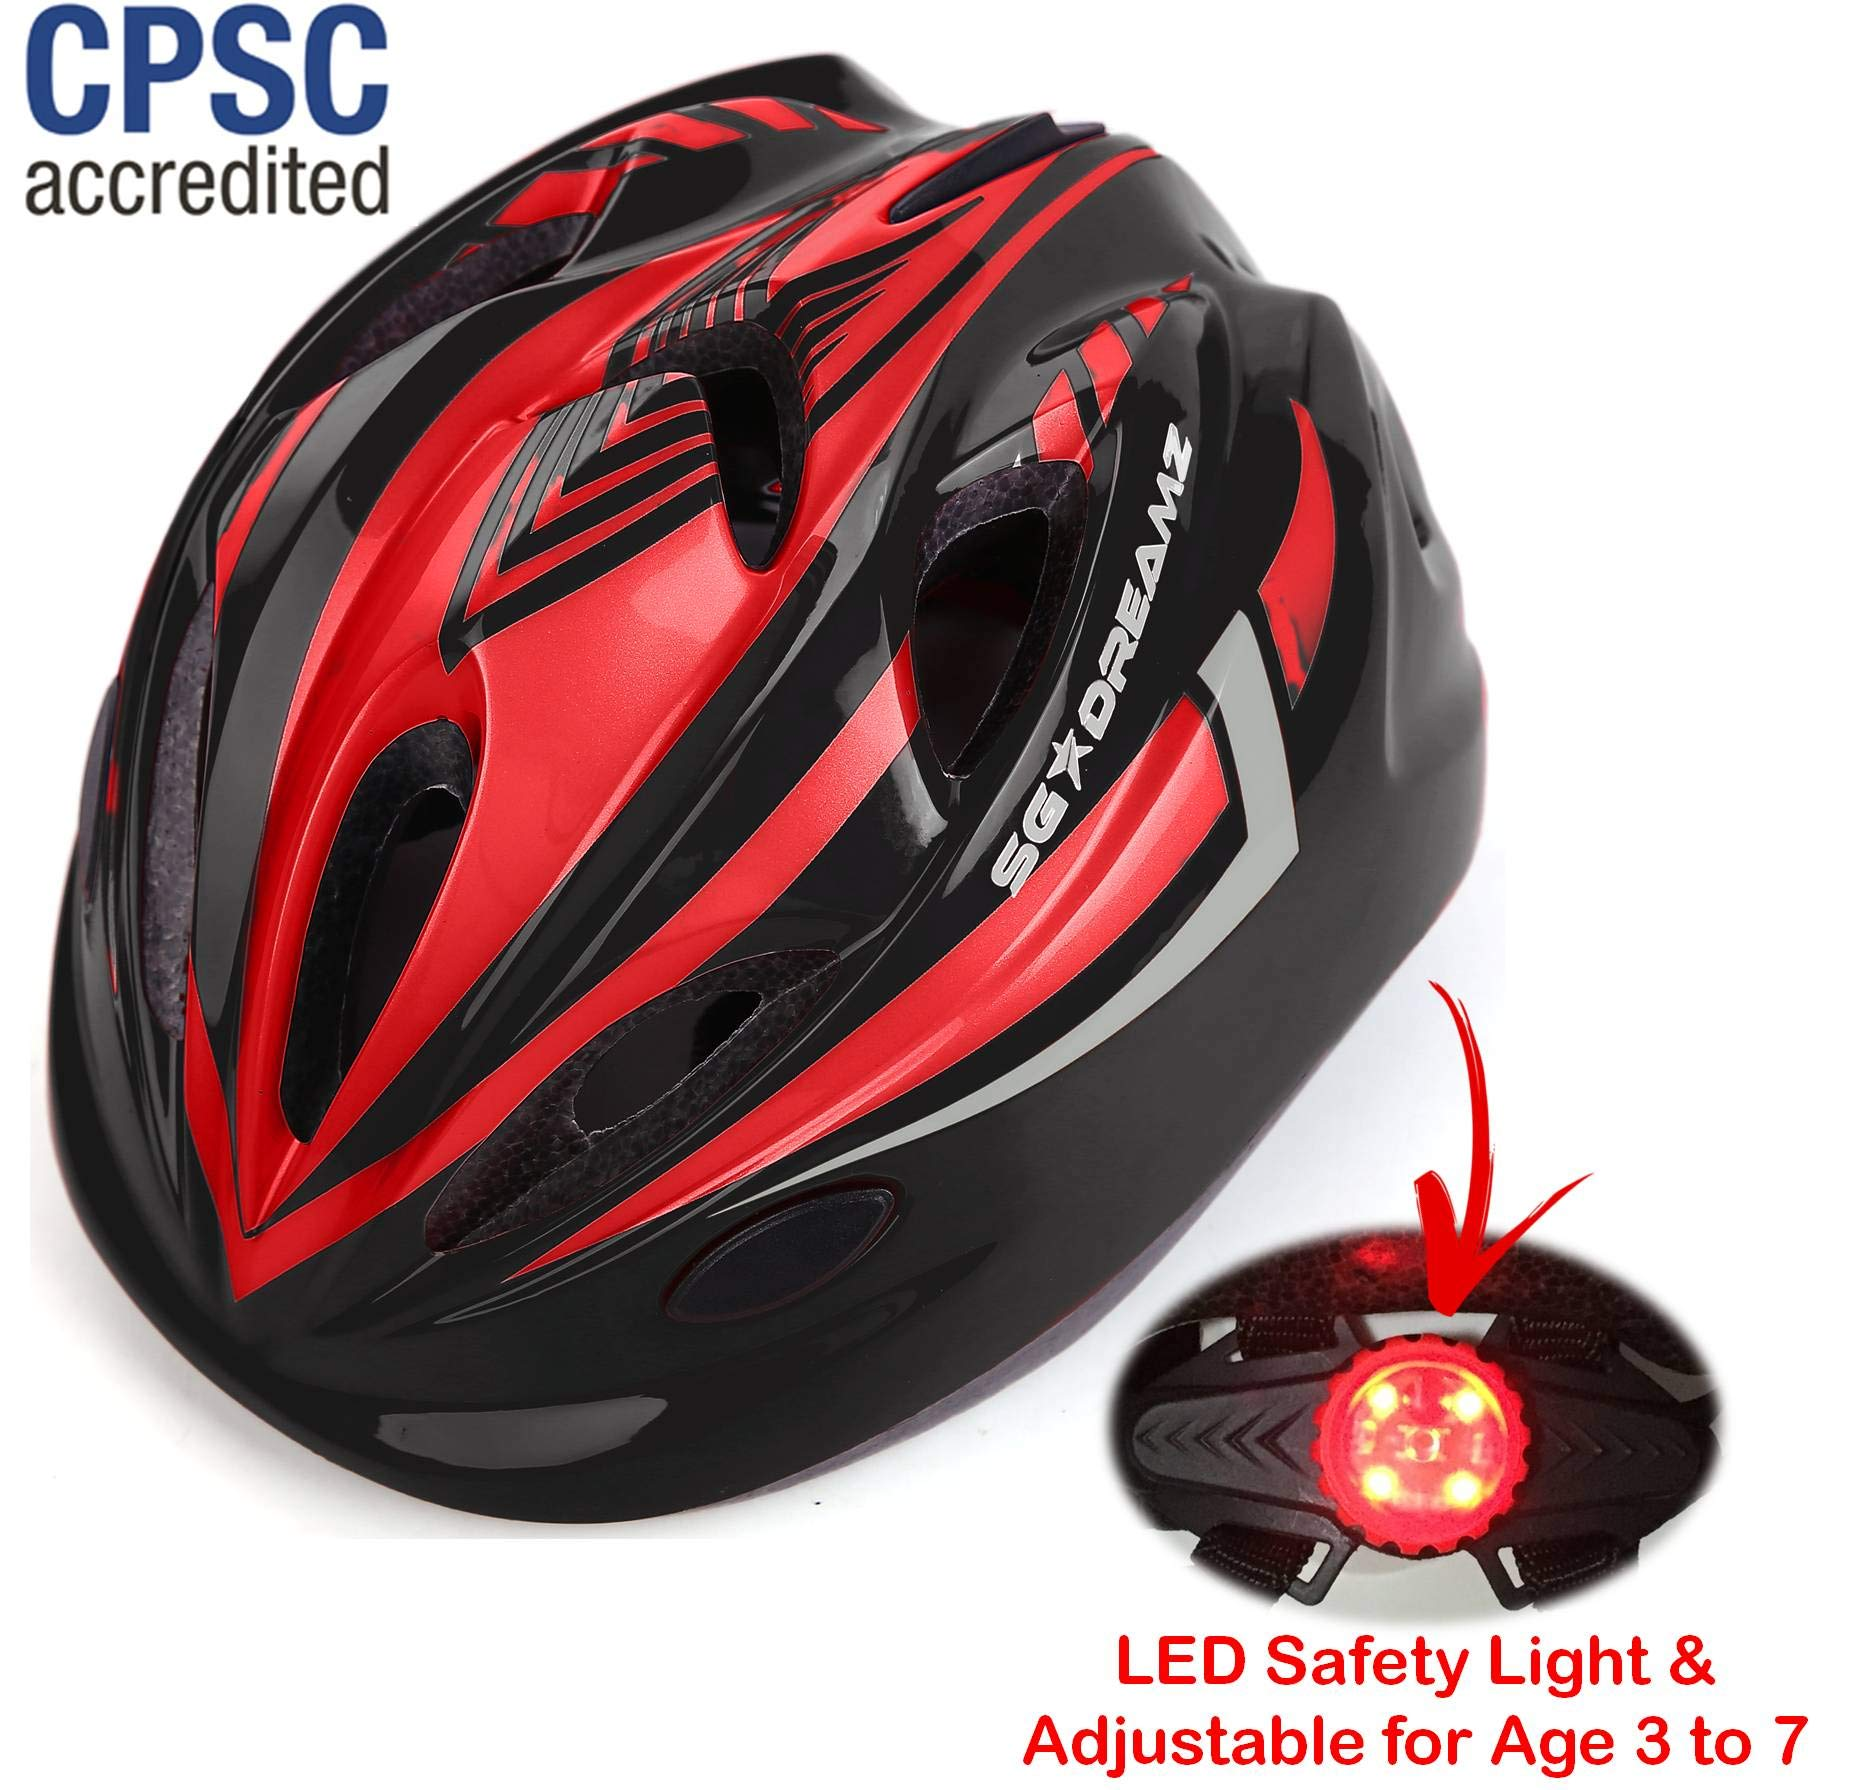 Kids Bike Helmet – Adjustable from Toddler to Youth Size, Ages 3 To 7 - Durable Kid Bicycle Helmets with Fun Racing Design Boys and Girls will LOVE - CSPC Certified for Safety (Black Red With Light)